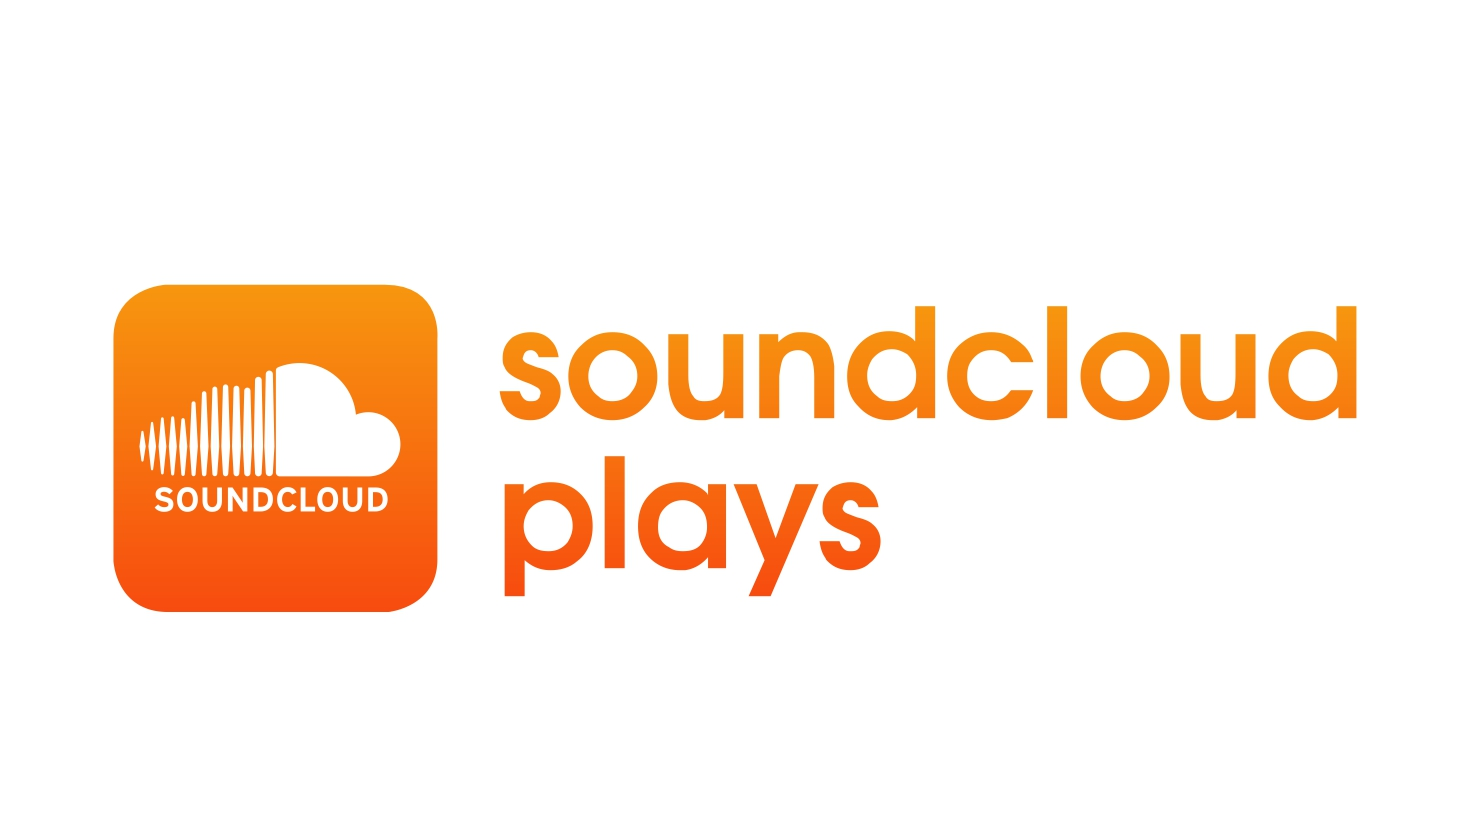 Buy 1 Million SoundCloud Plays